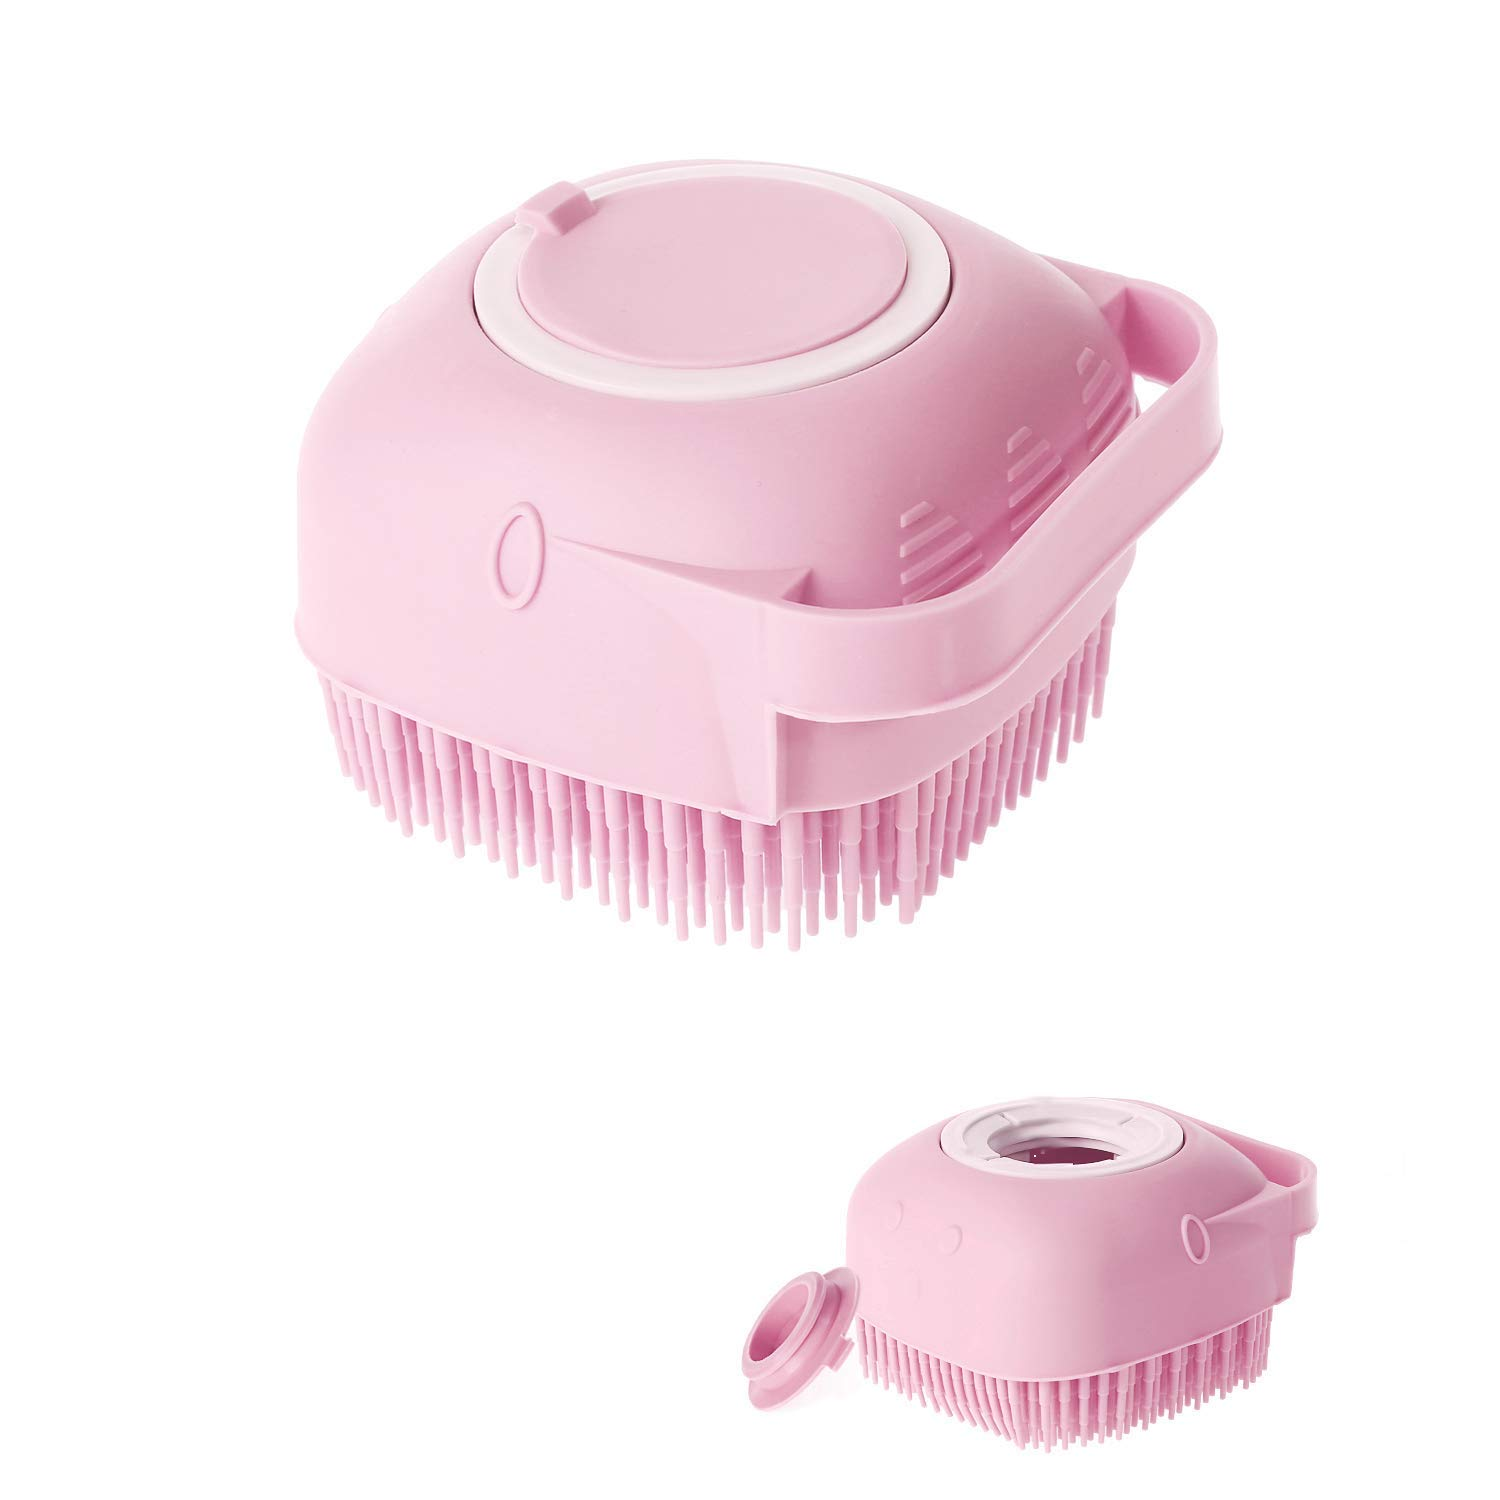 Eowhitu Body Brush for Shower with Store Classic Silicone Massage Bath